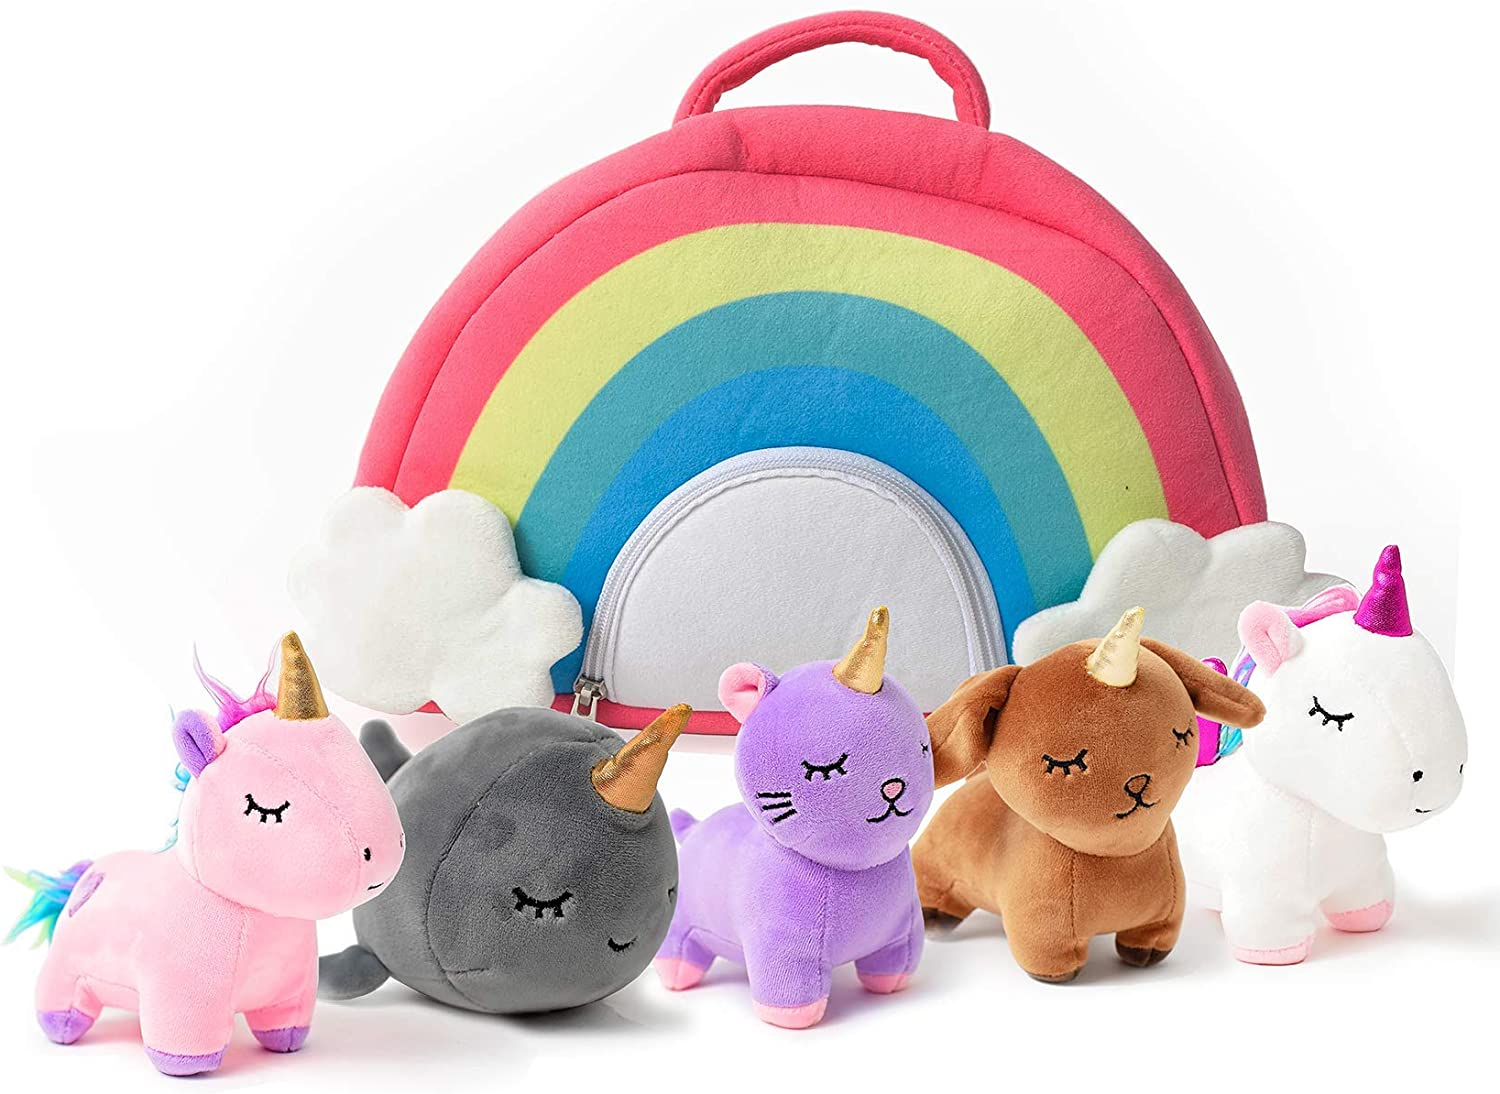 Pixie Crush Unicorn Toys Stuffed Animal Gift Plush Set with Rainbow Case – 5 Piece Stuffed Animals with 2 Unicorns, Kitty, Puppy, and Narwhal – Toddler Gifts for Girls Aged 3, 4, 5 ,6 ,7, 8 yr olds